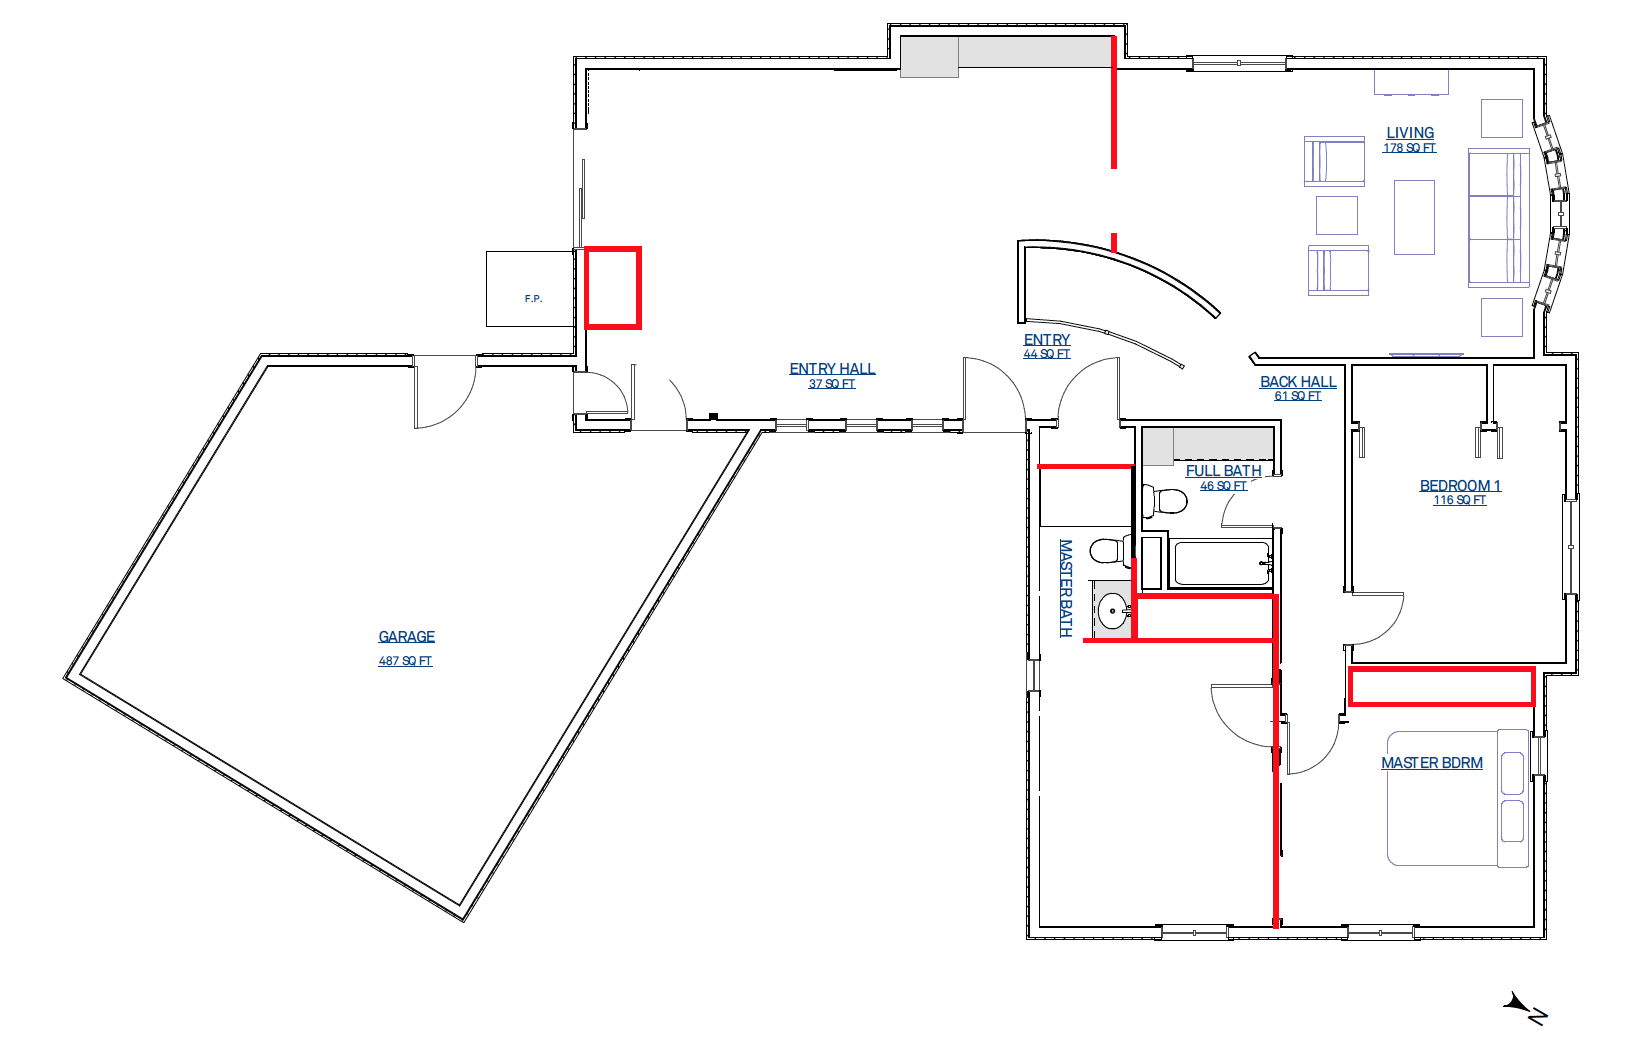 Original main level floorplan (red lines are walls we removed)